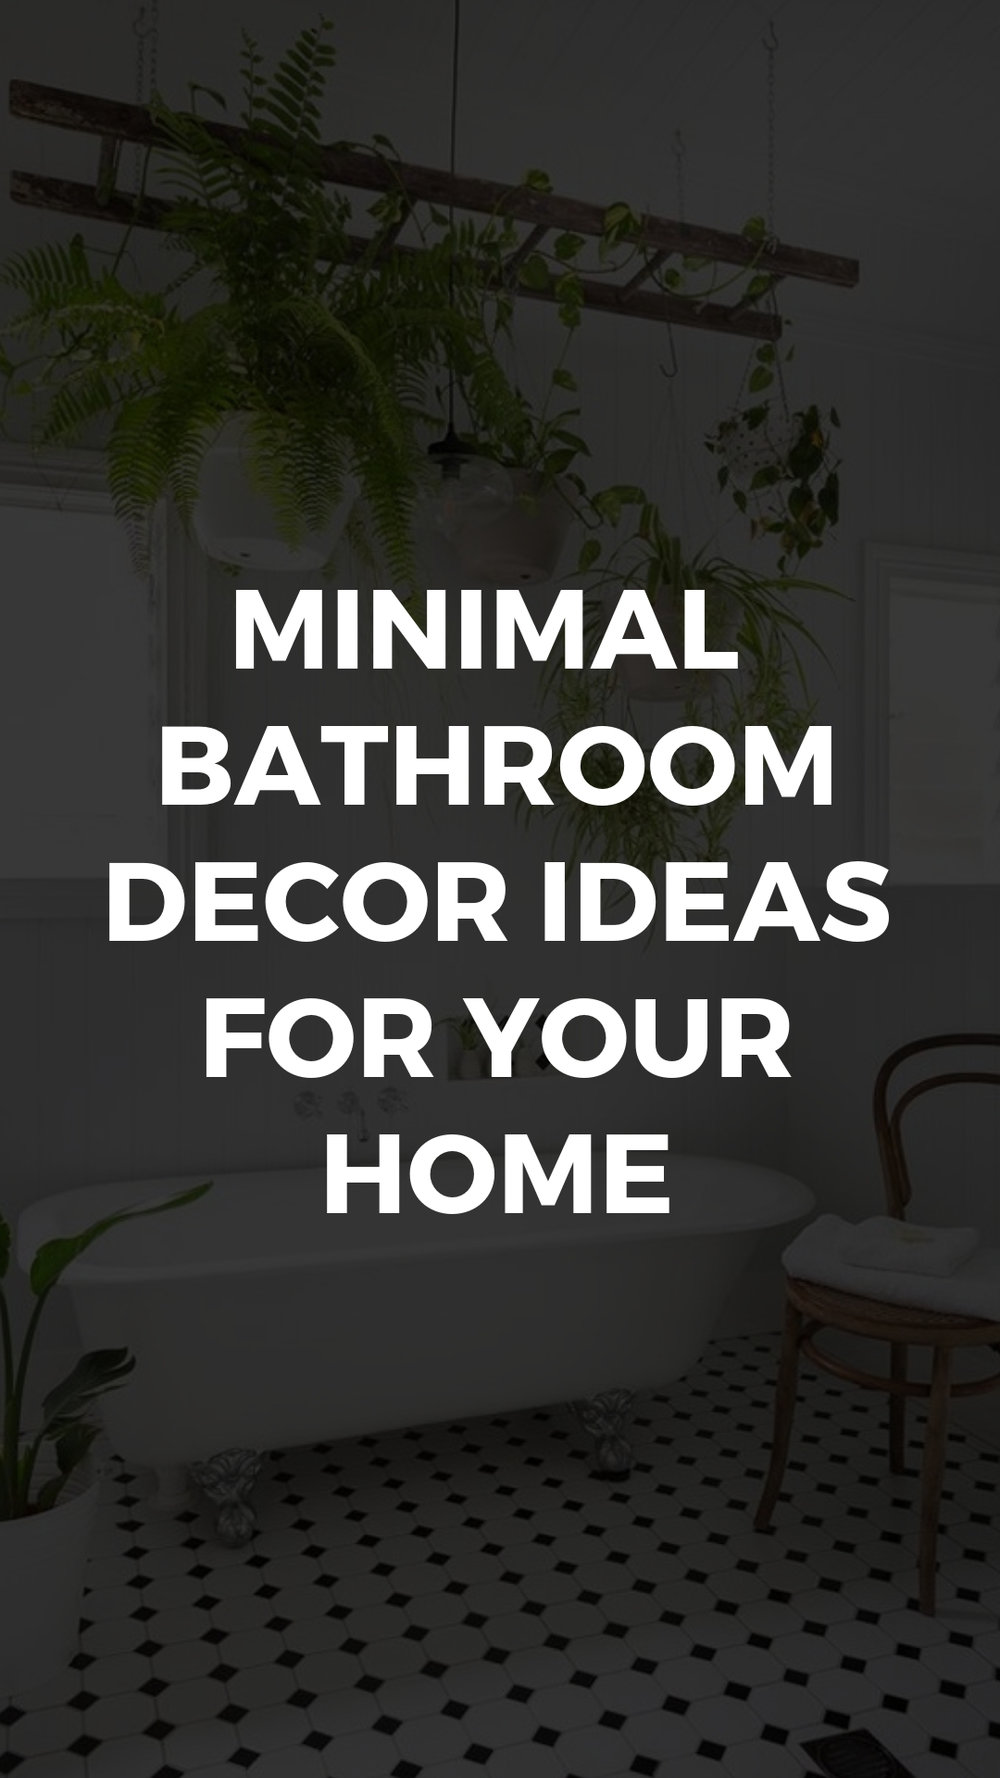 Minimal bathroom decor tips 1.jpg